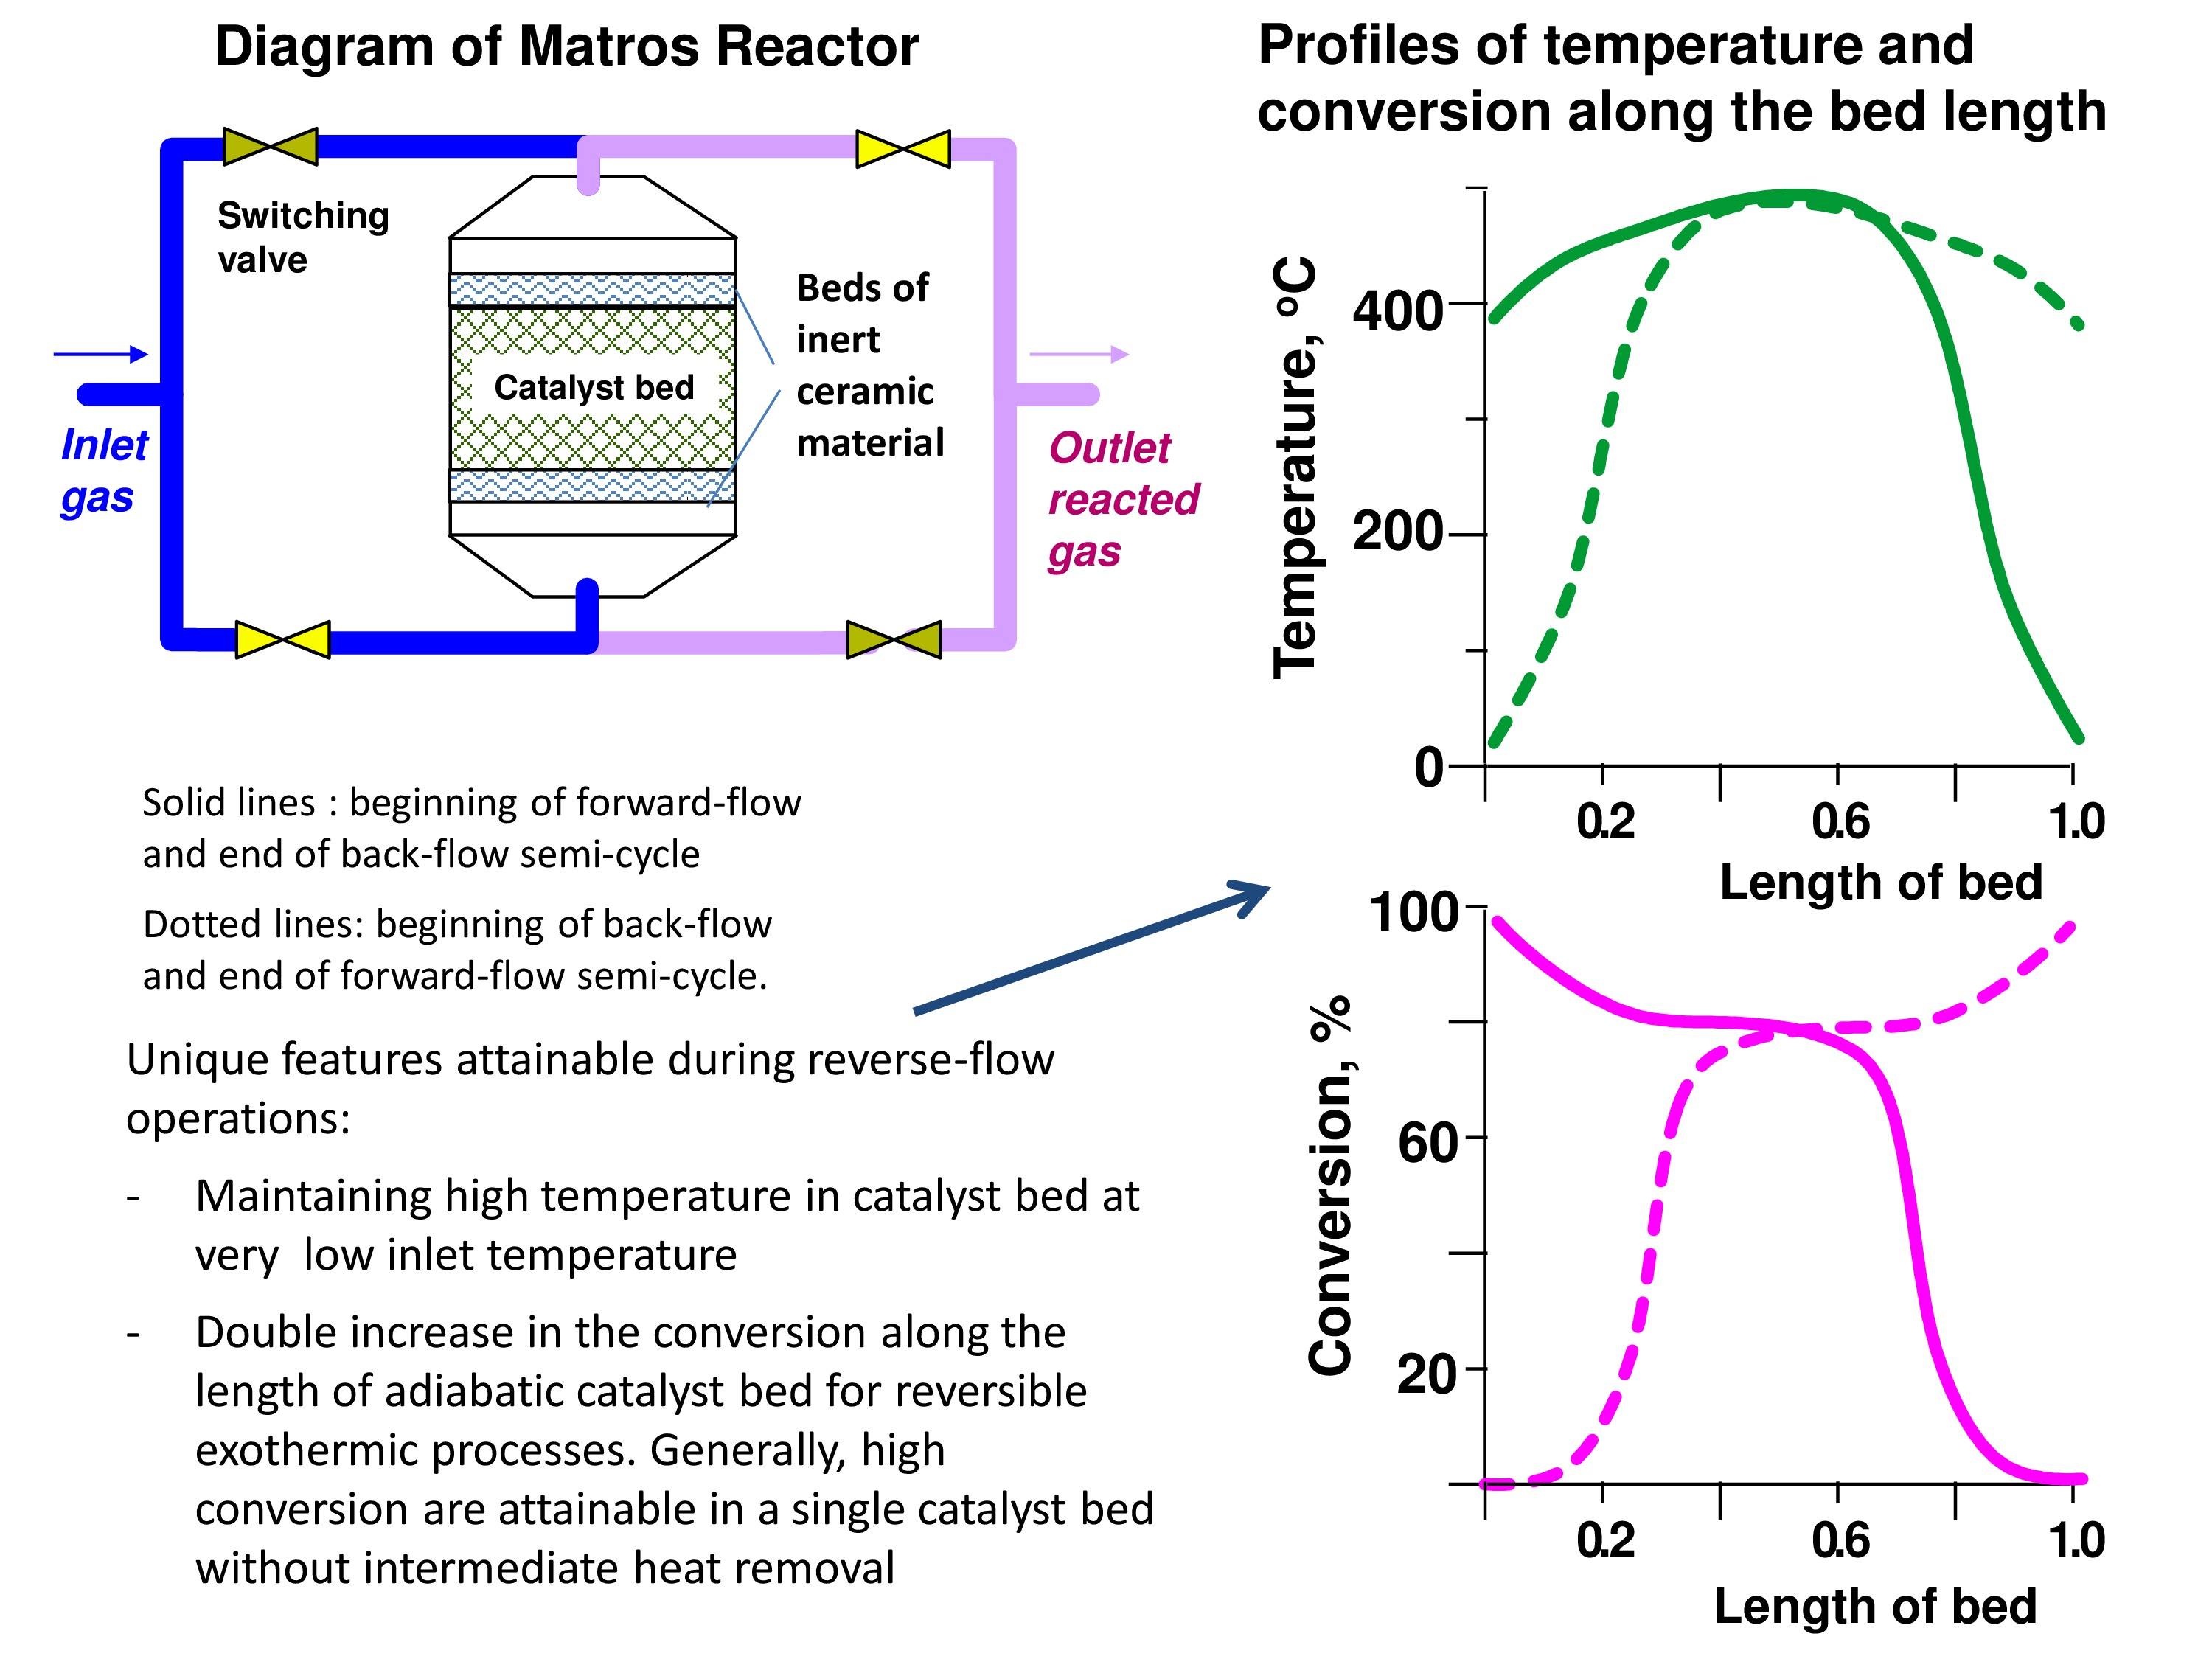 Sales Cycle Process Flow Chart: Diagram of Matros Reactor and Profiles of Temperature and ,Chart